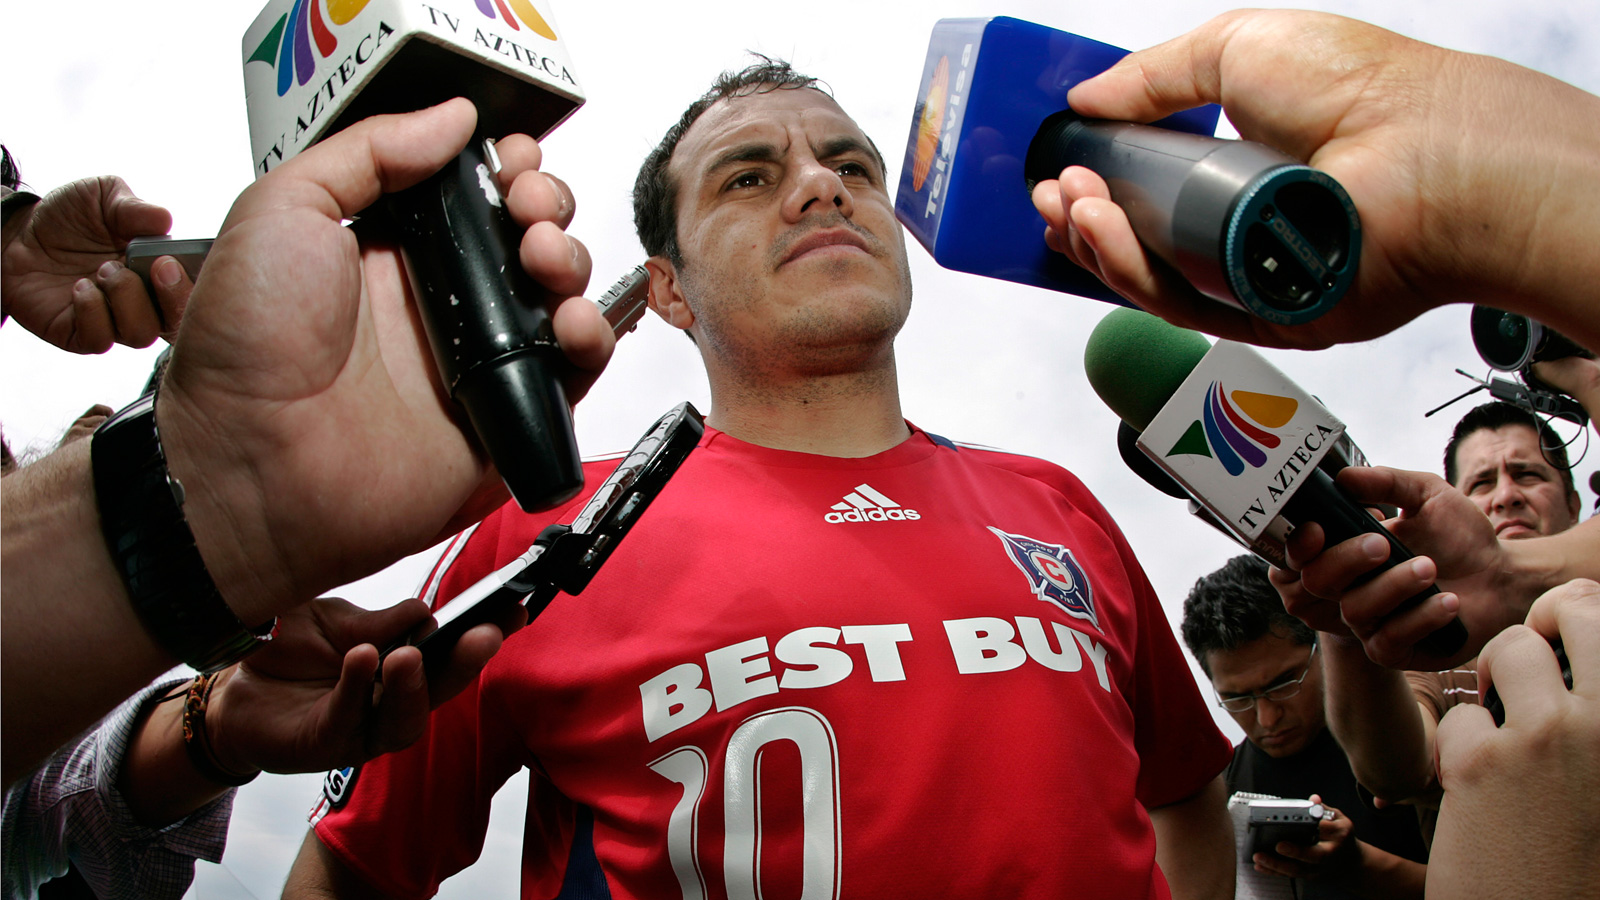 Blanco commanded plenty of media attention during his time in MLS with the Chicago Fire.